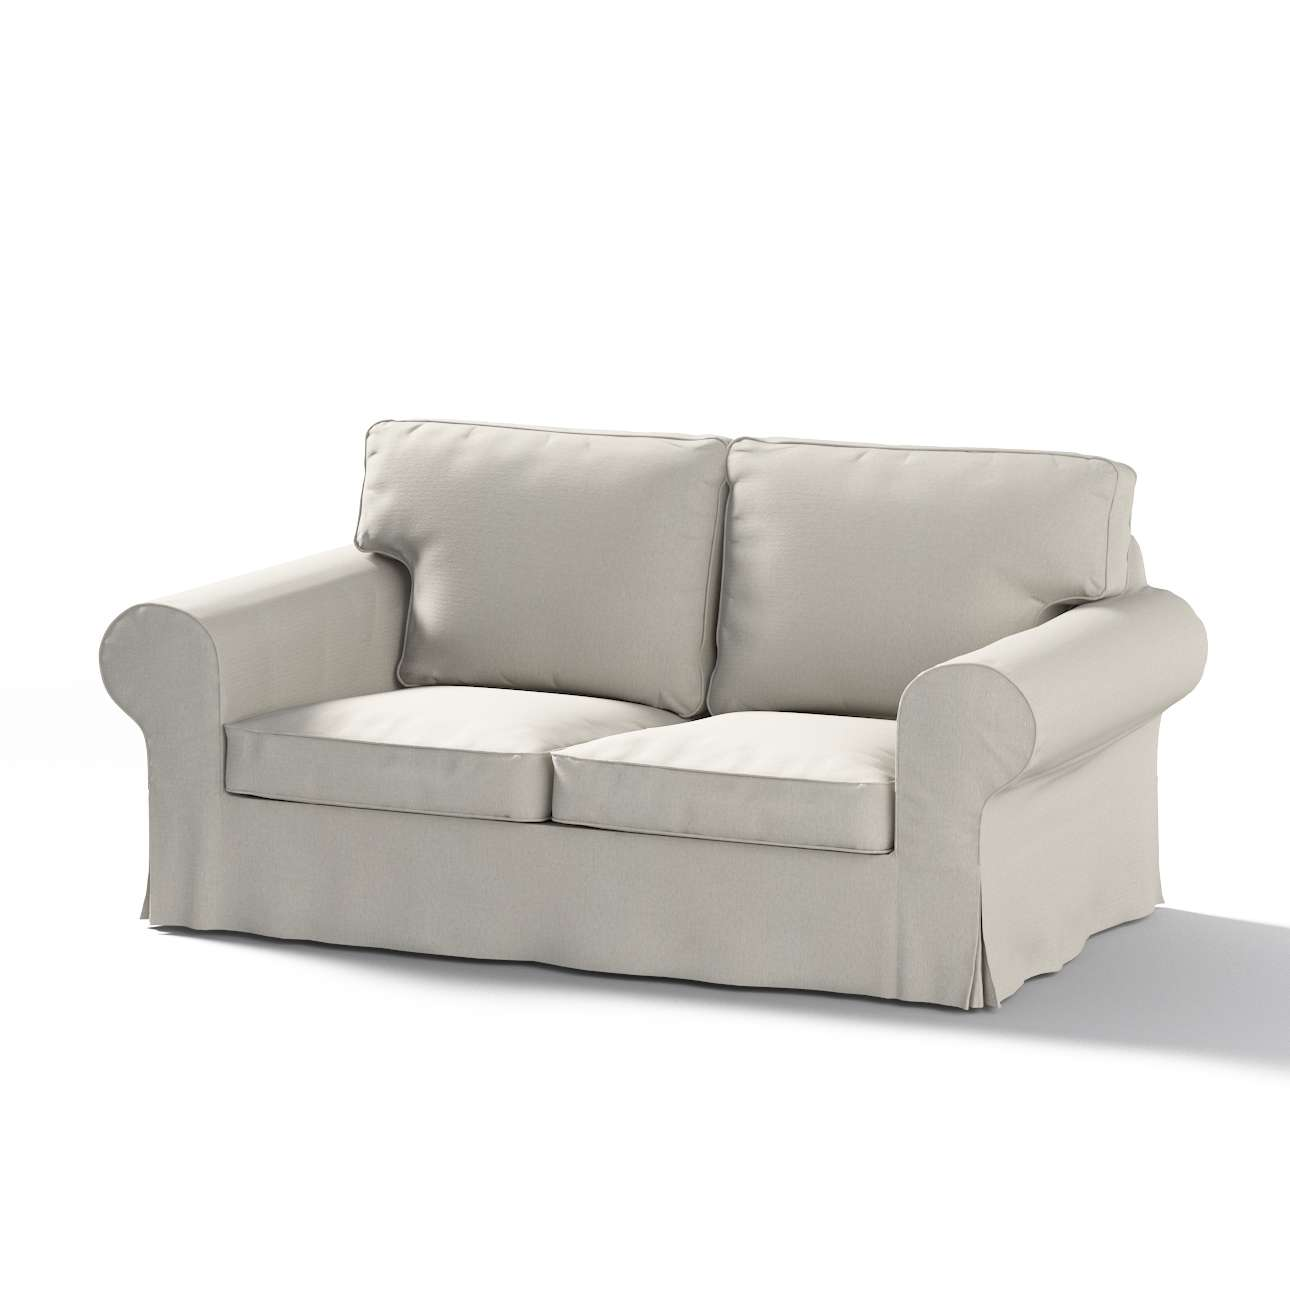 Ektorp 2 Seater Sofa Bed Cover For Model On Sale In Ikea